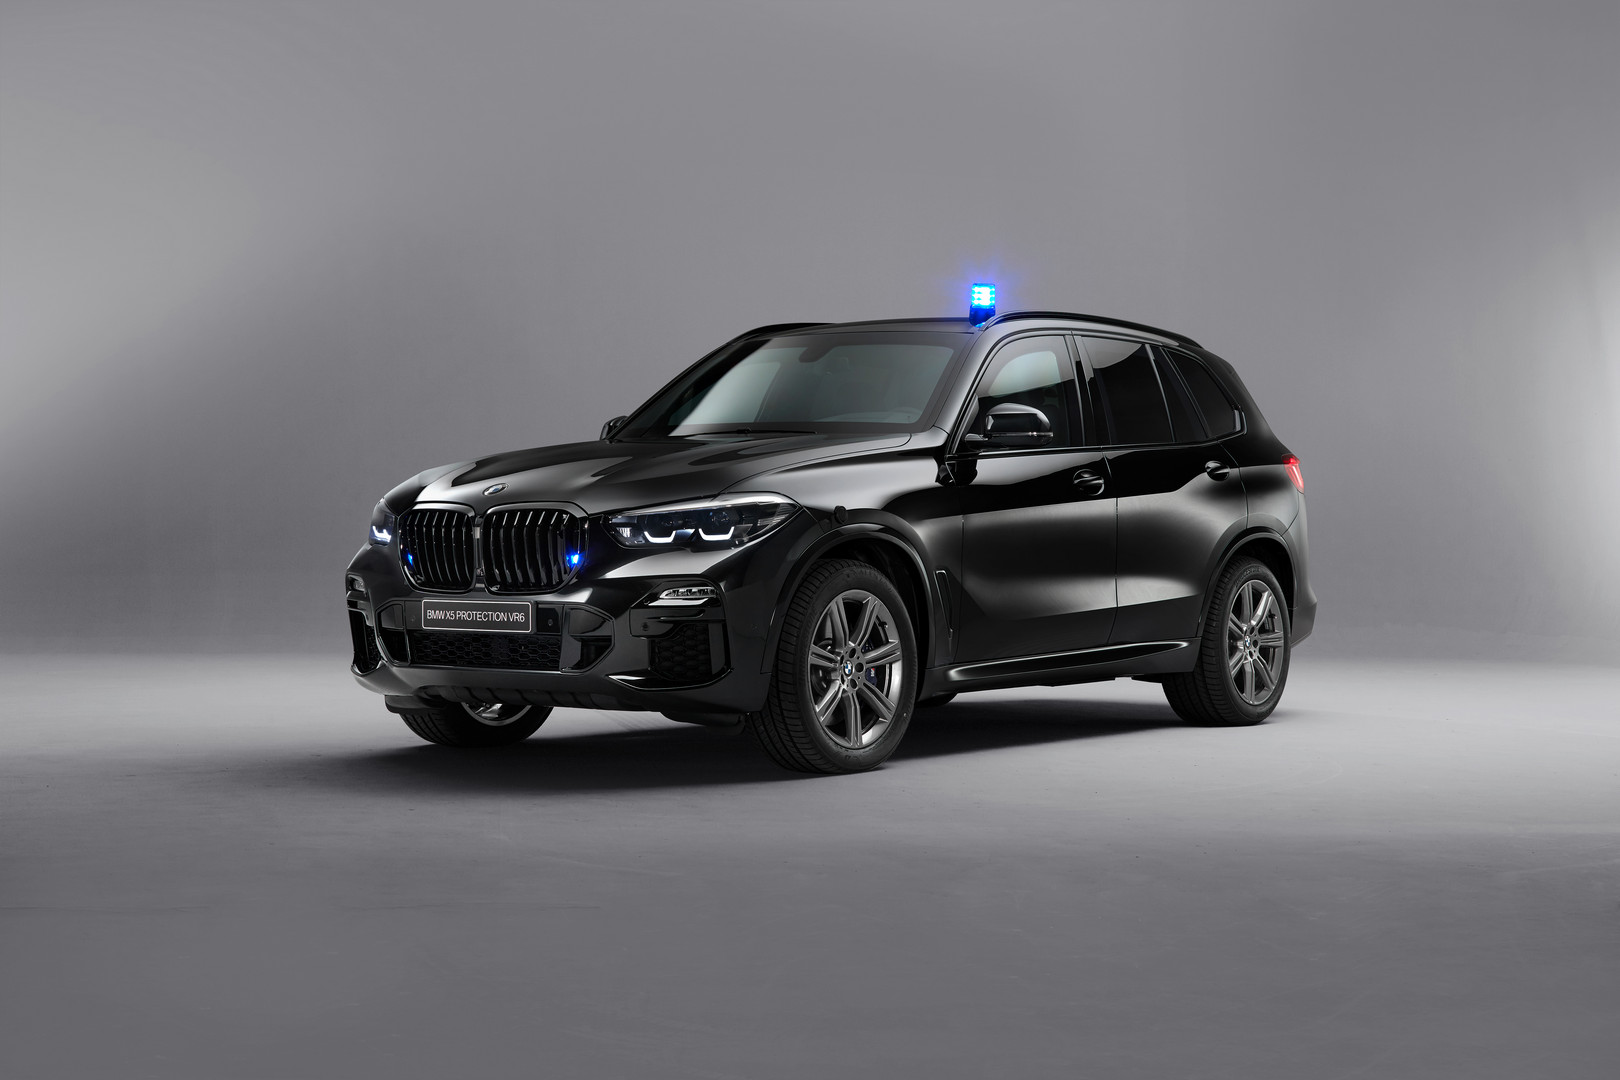 BMW X5 Protection VR6 Price